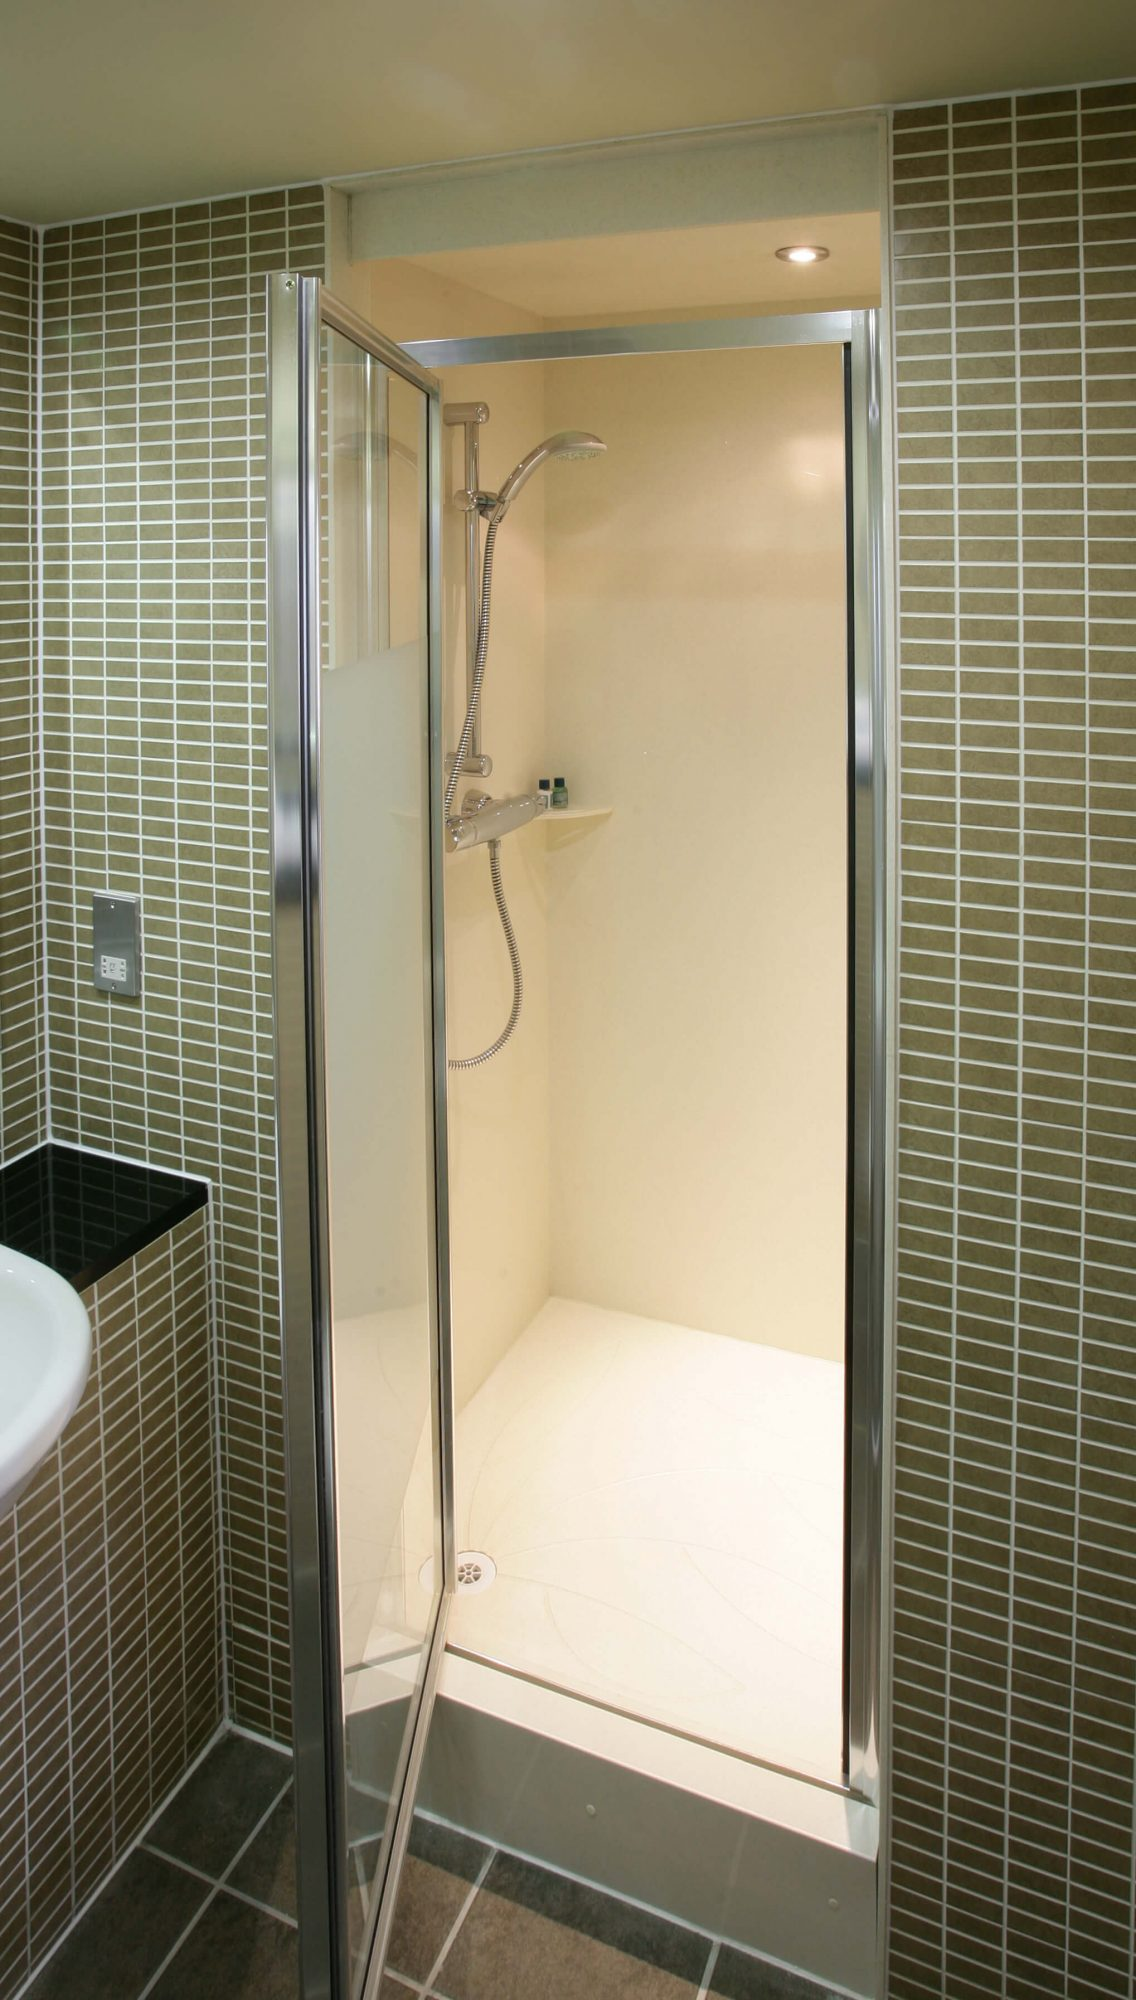 Mecure Aston_shower cubicle